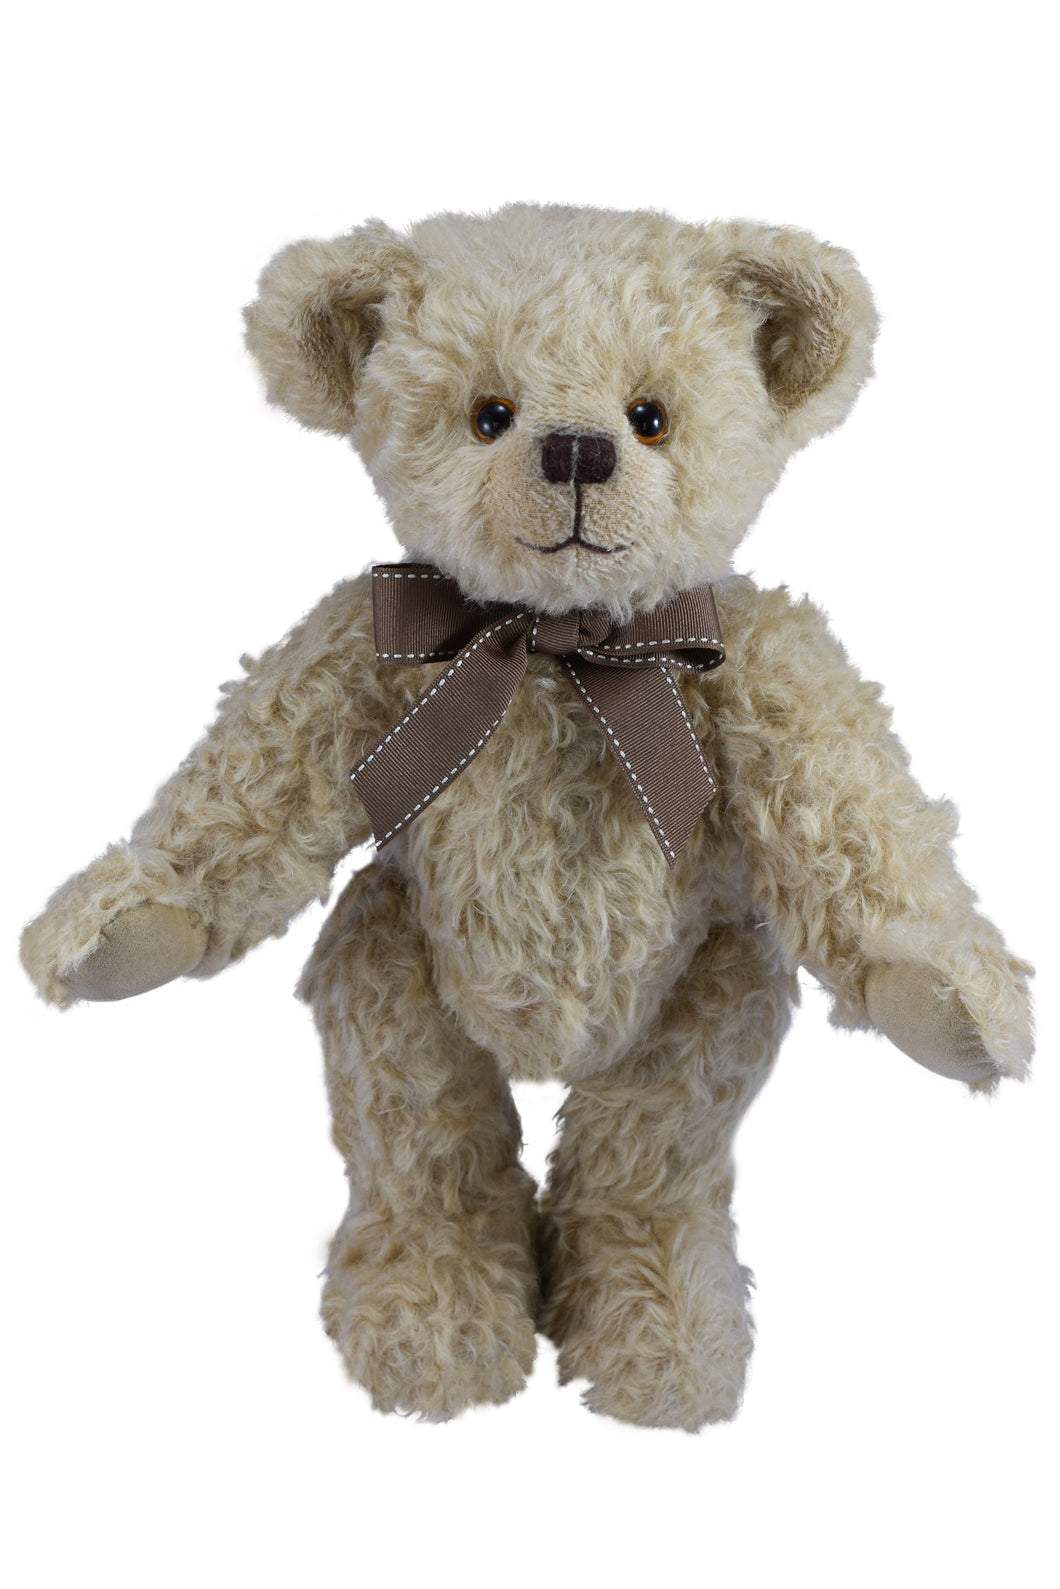 NEW: TEDDY BREEZY / DEAN'S MOHAIR LIMITED BEAR